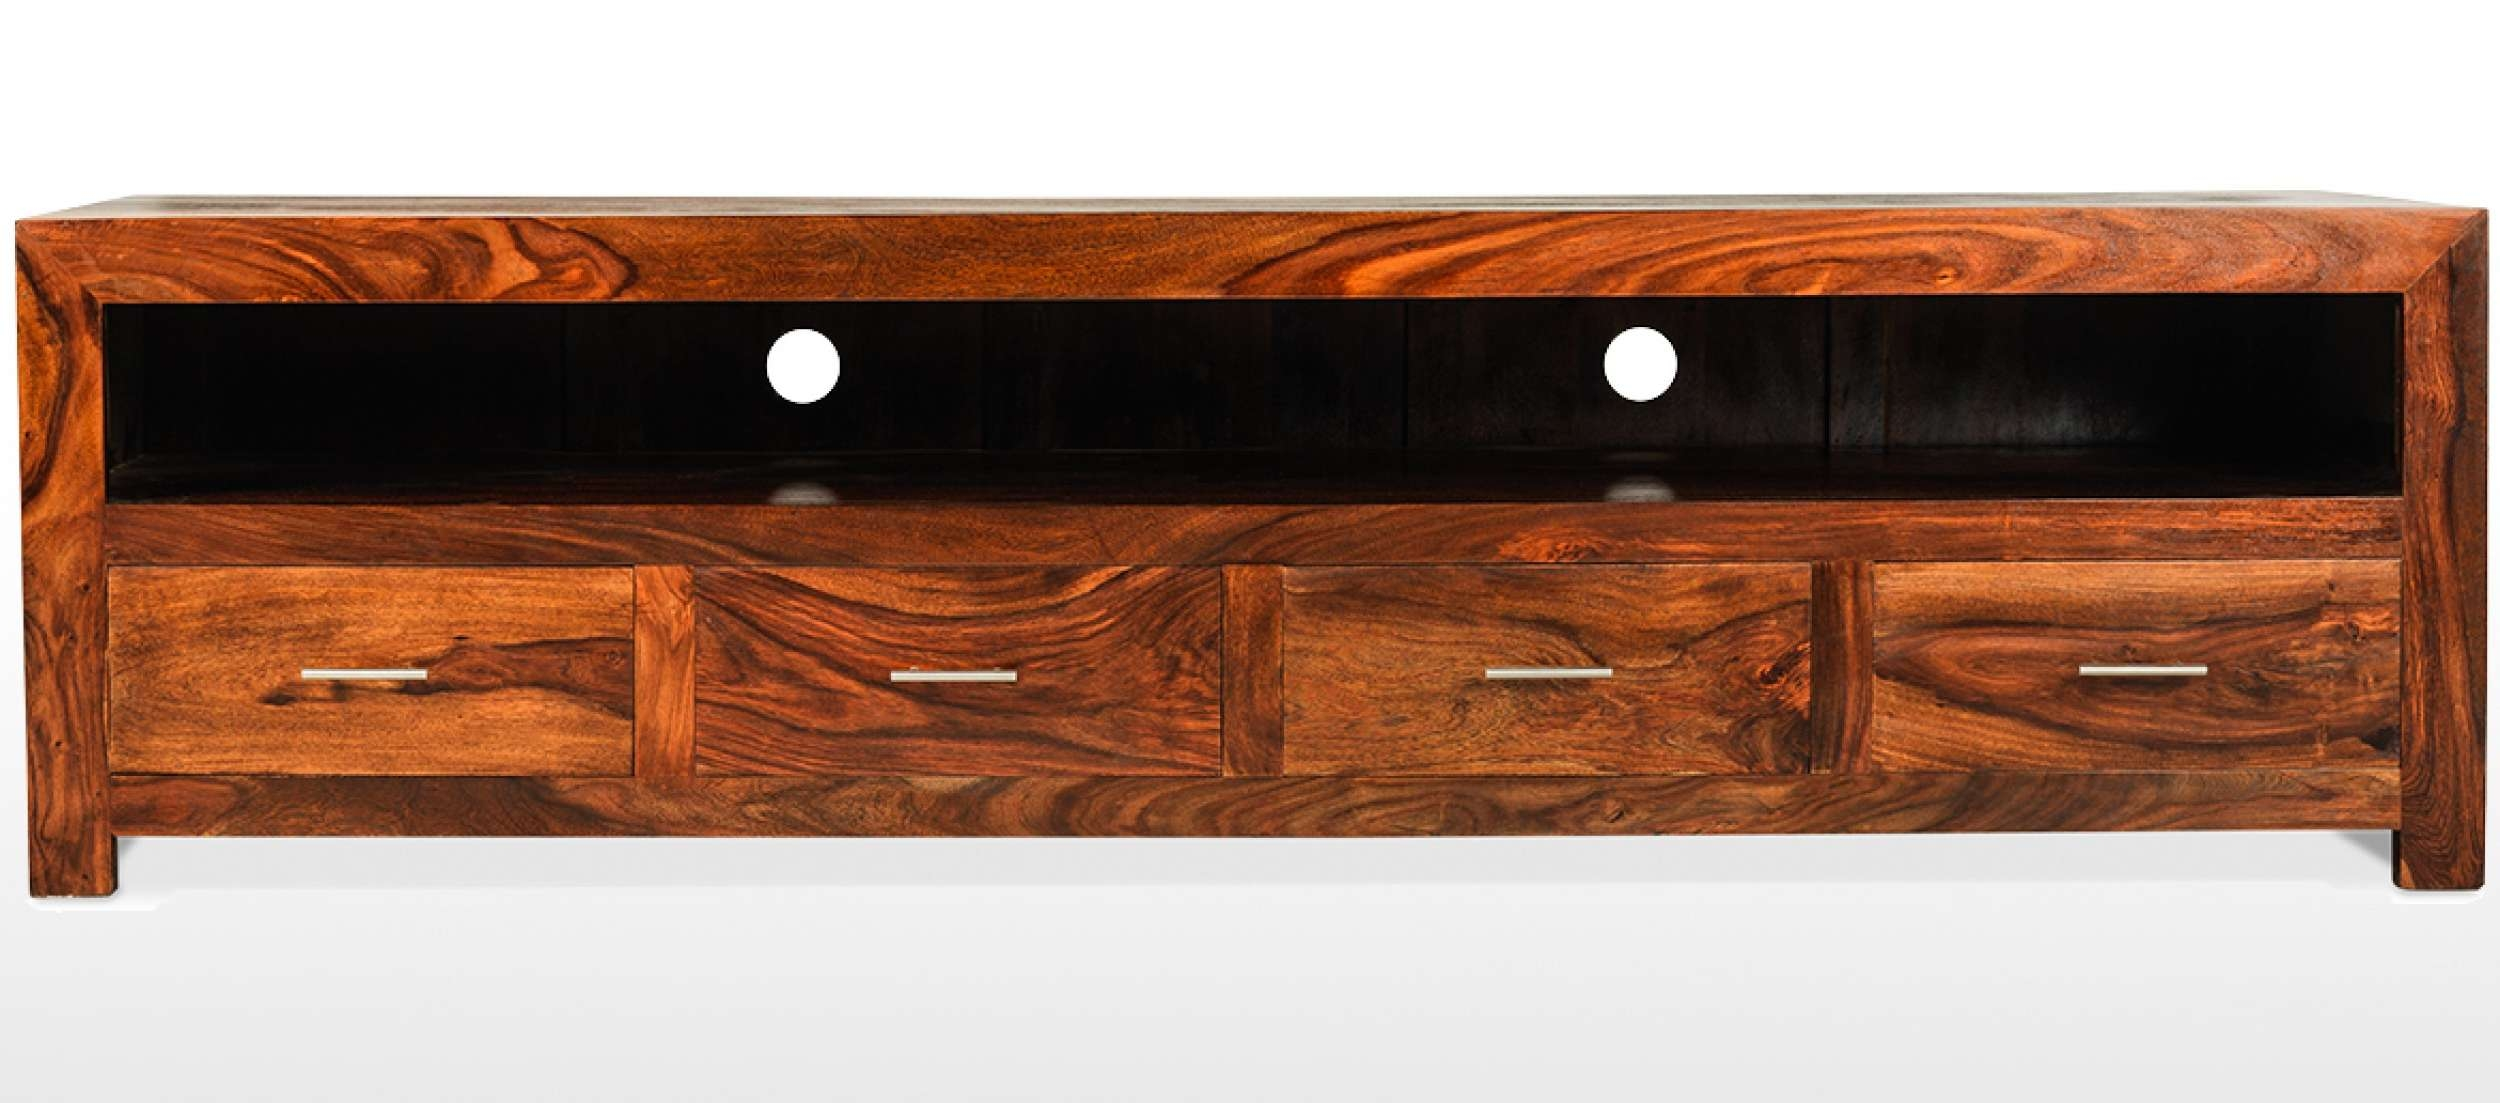 Cube Sheesham Long Plasma Tv Cabinet | Quercus Living Intended For Jali Tv Cabinets (View 6 of 20)